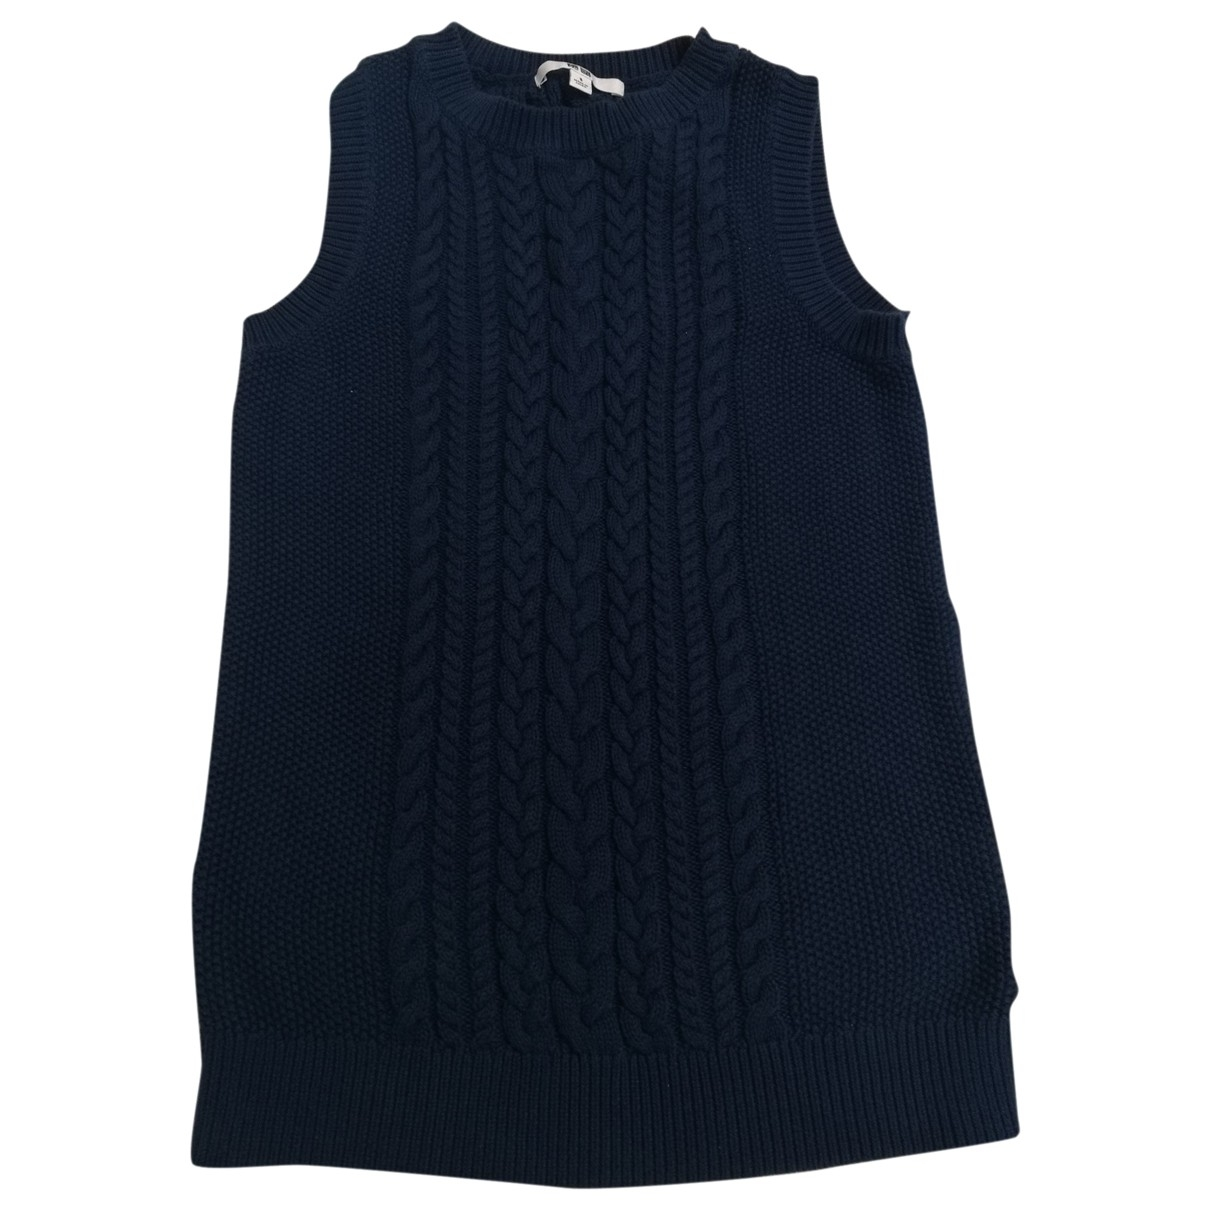 Uniqlo \N Navy Knitwear for Women S International